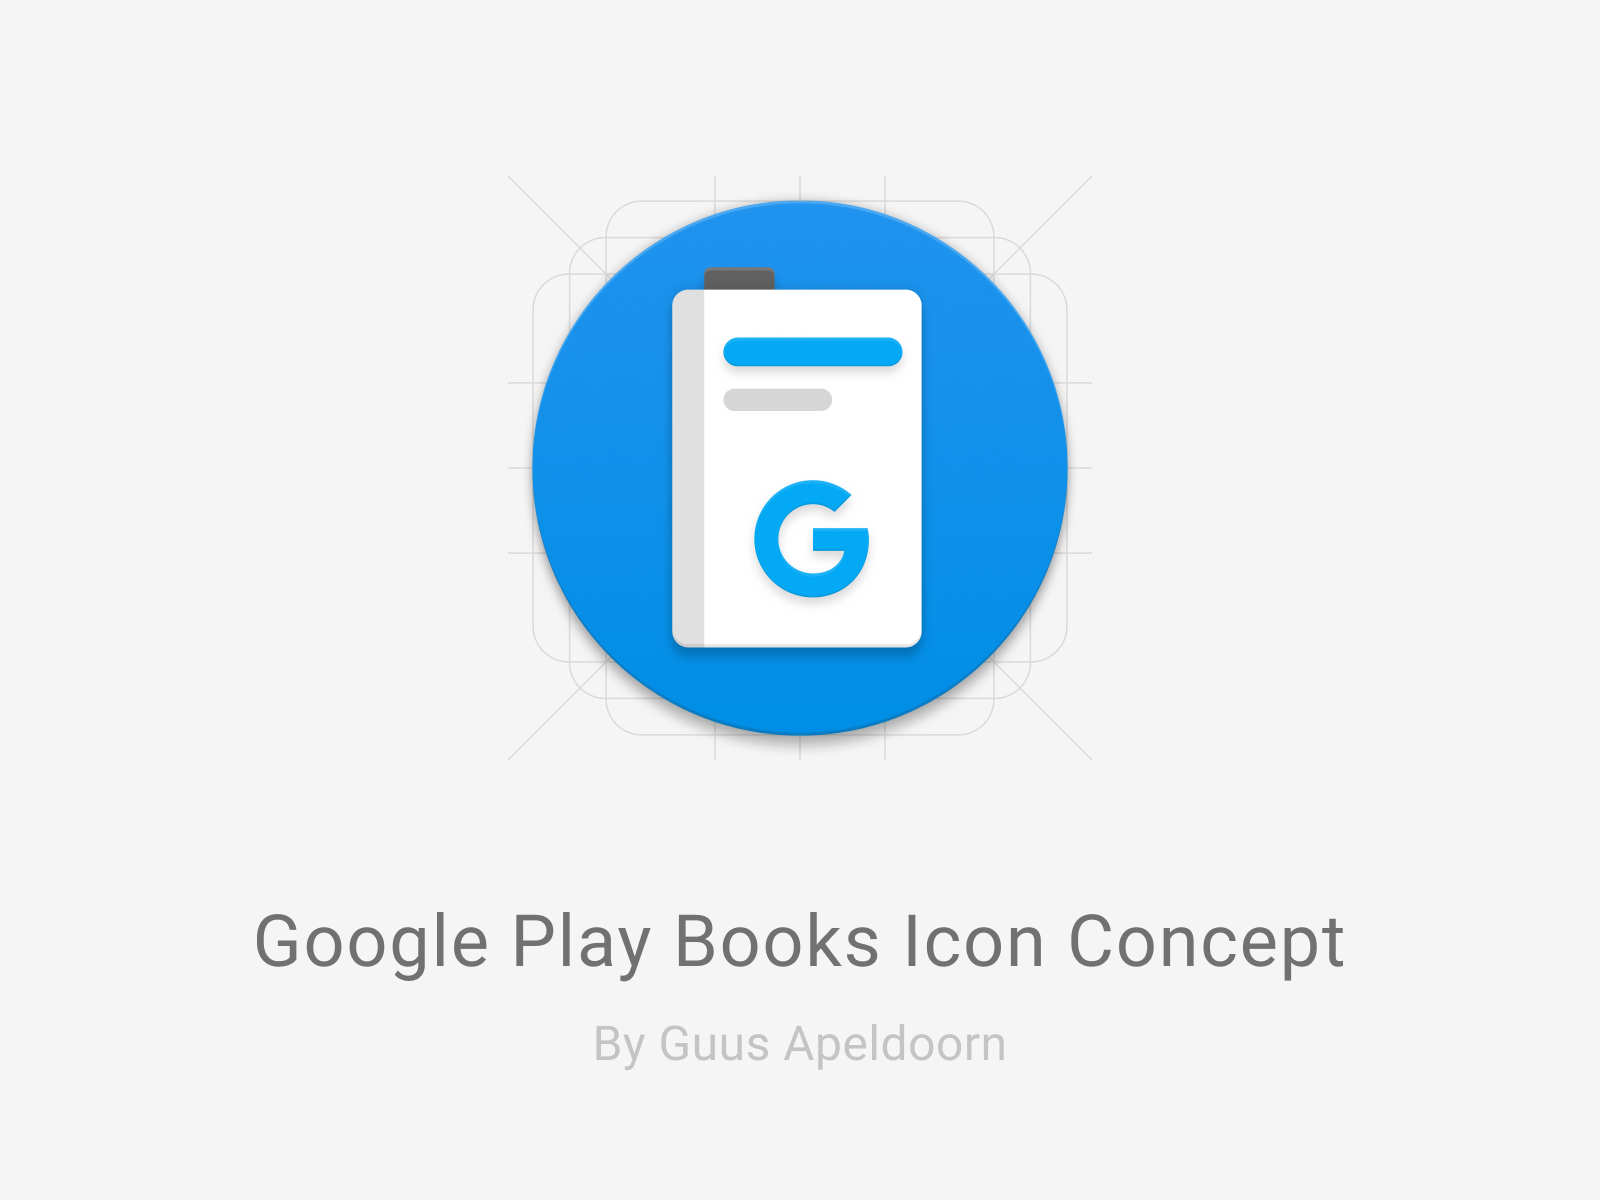 Google Play Books Icon - UpLabs